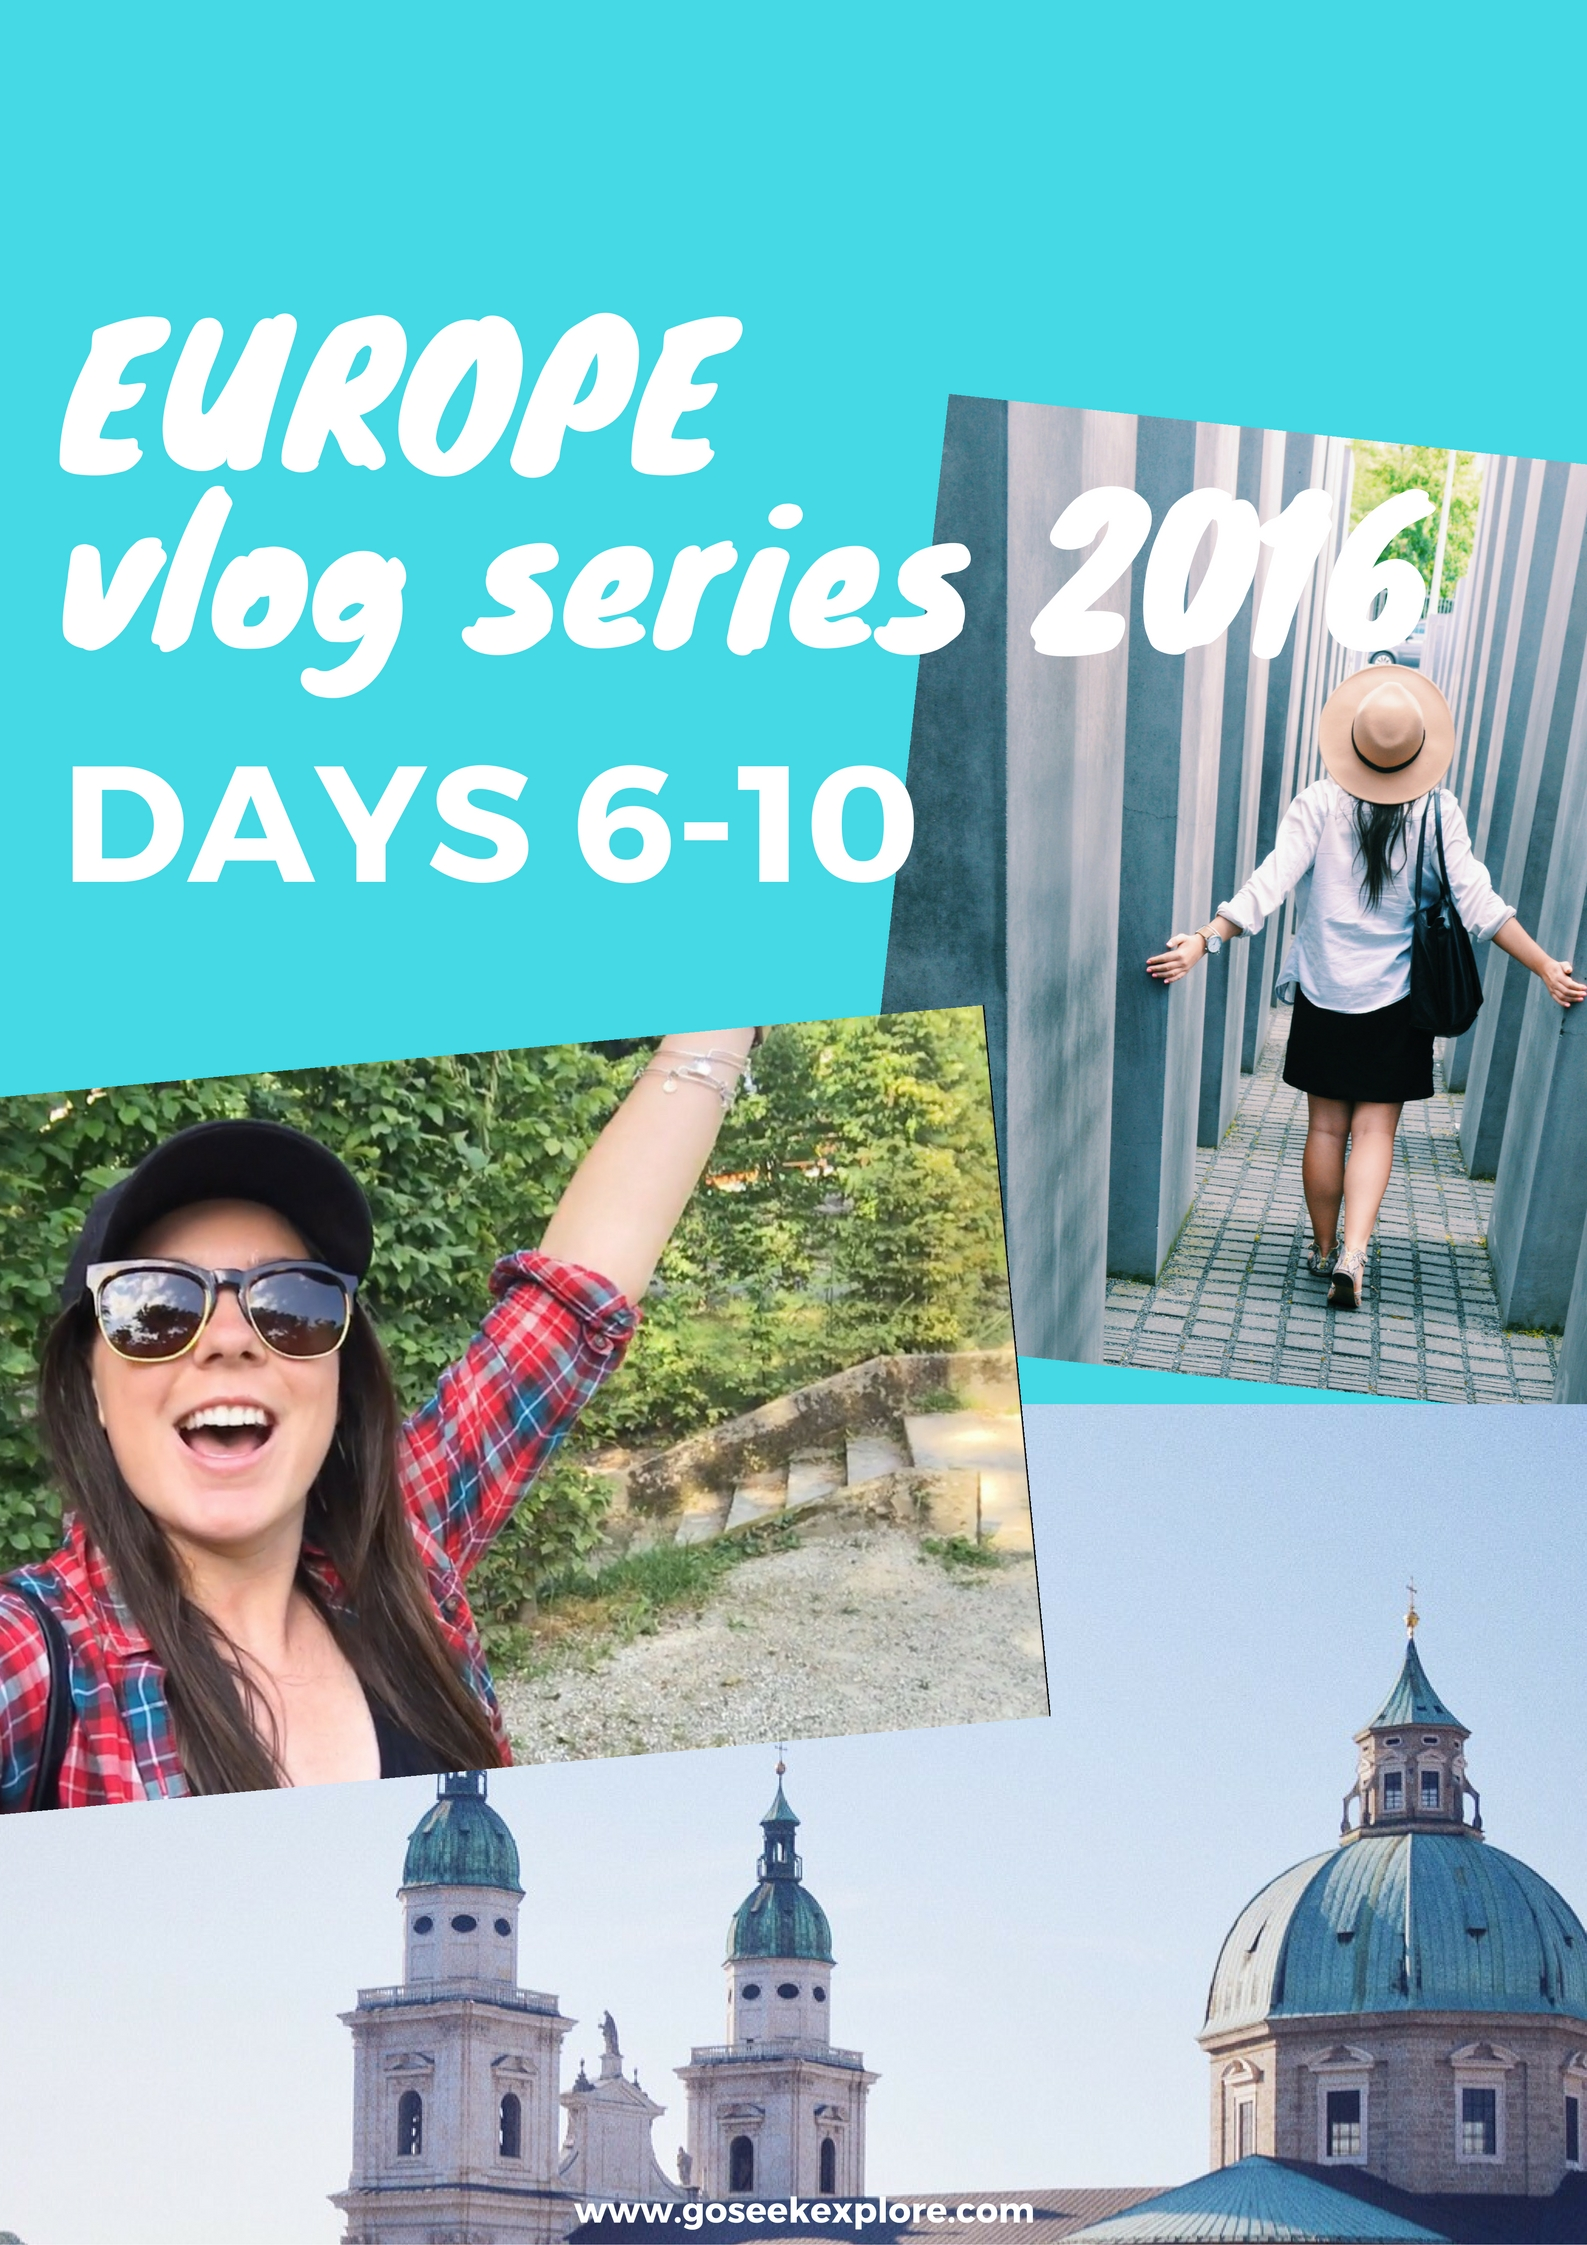 EUROPE VLOG SERIES 2016: palaces, concerts, and museums in Vienna!